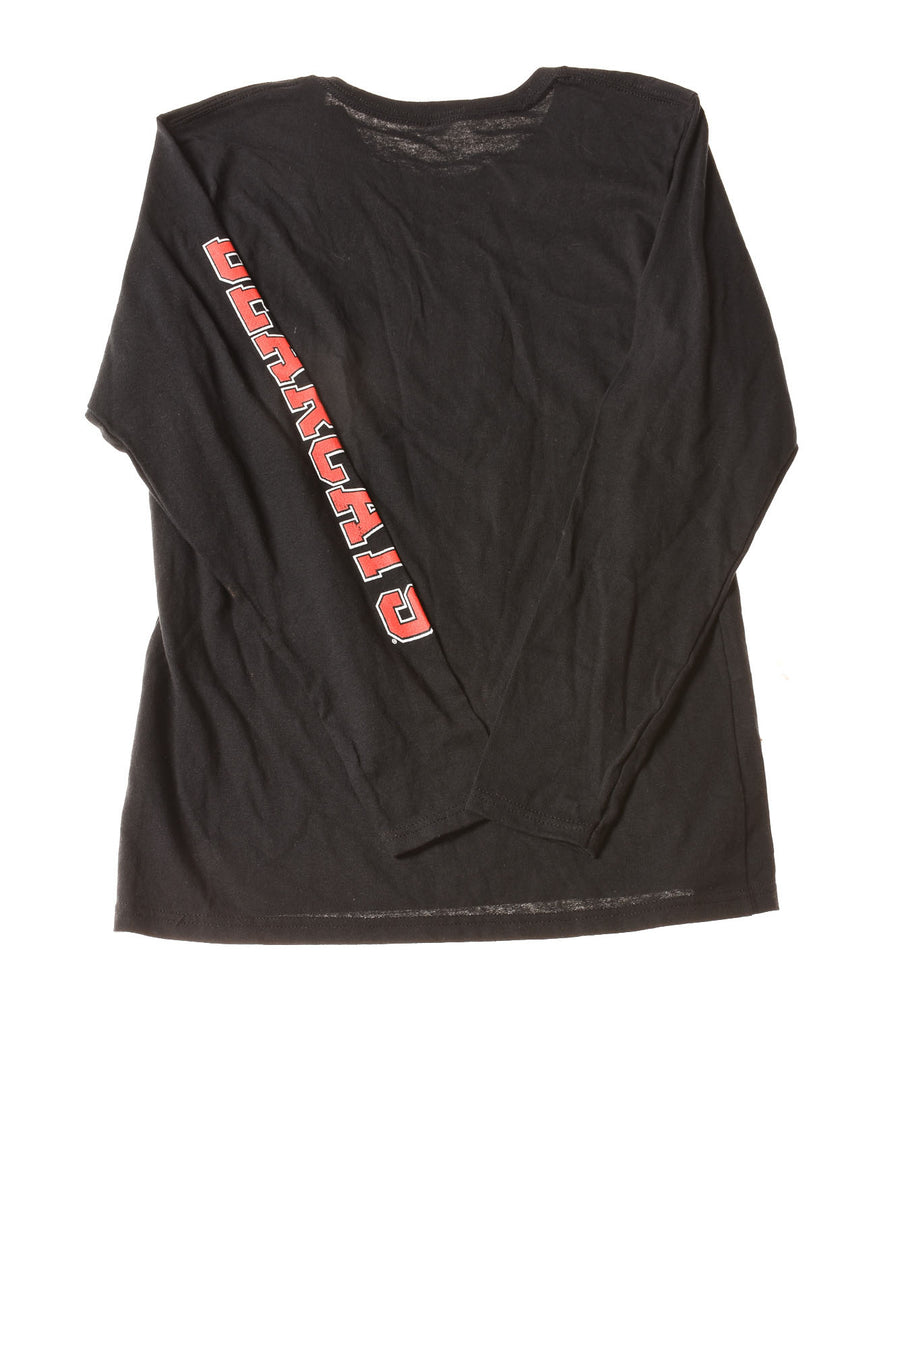 NEW Fanatics Women's Top Medium Black